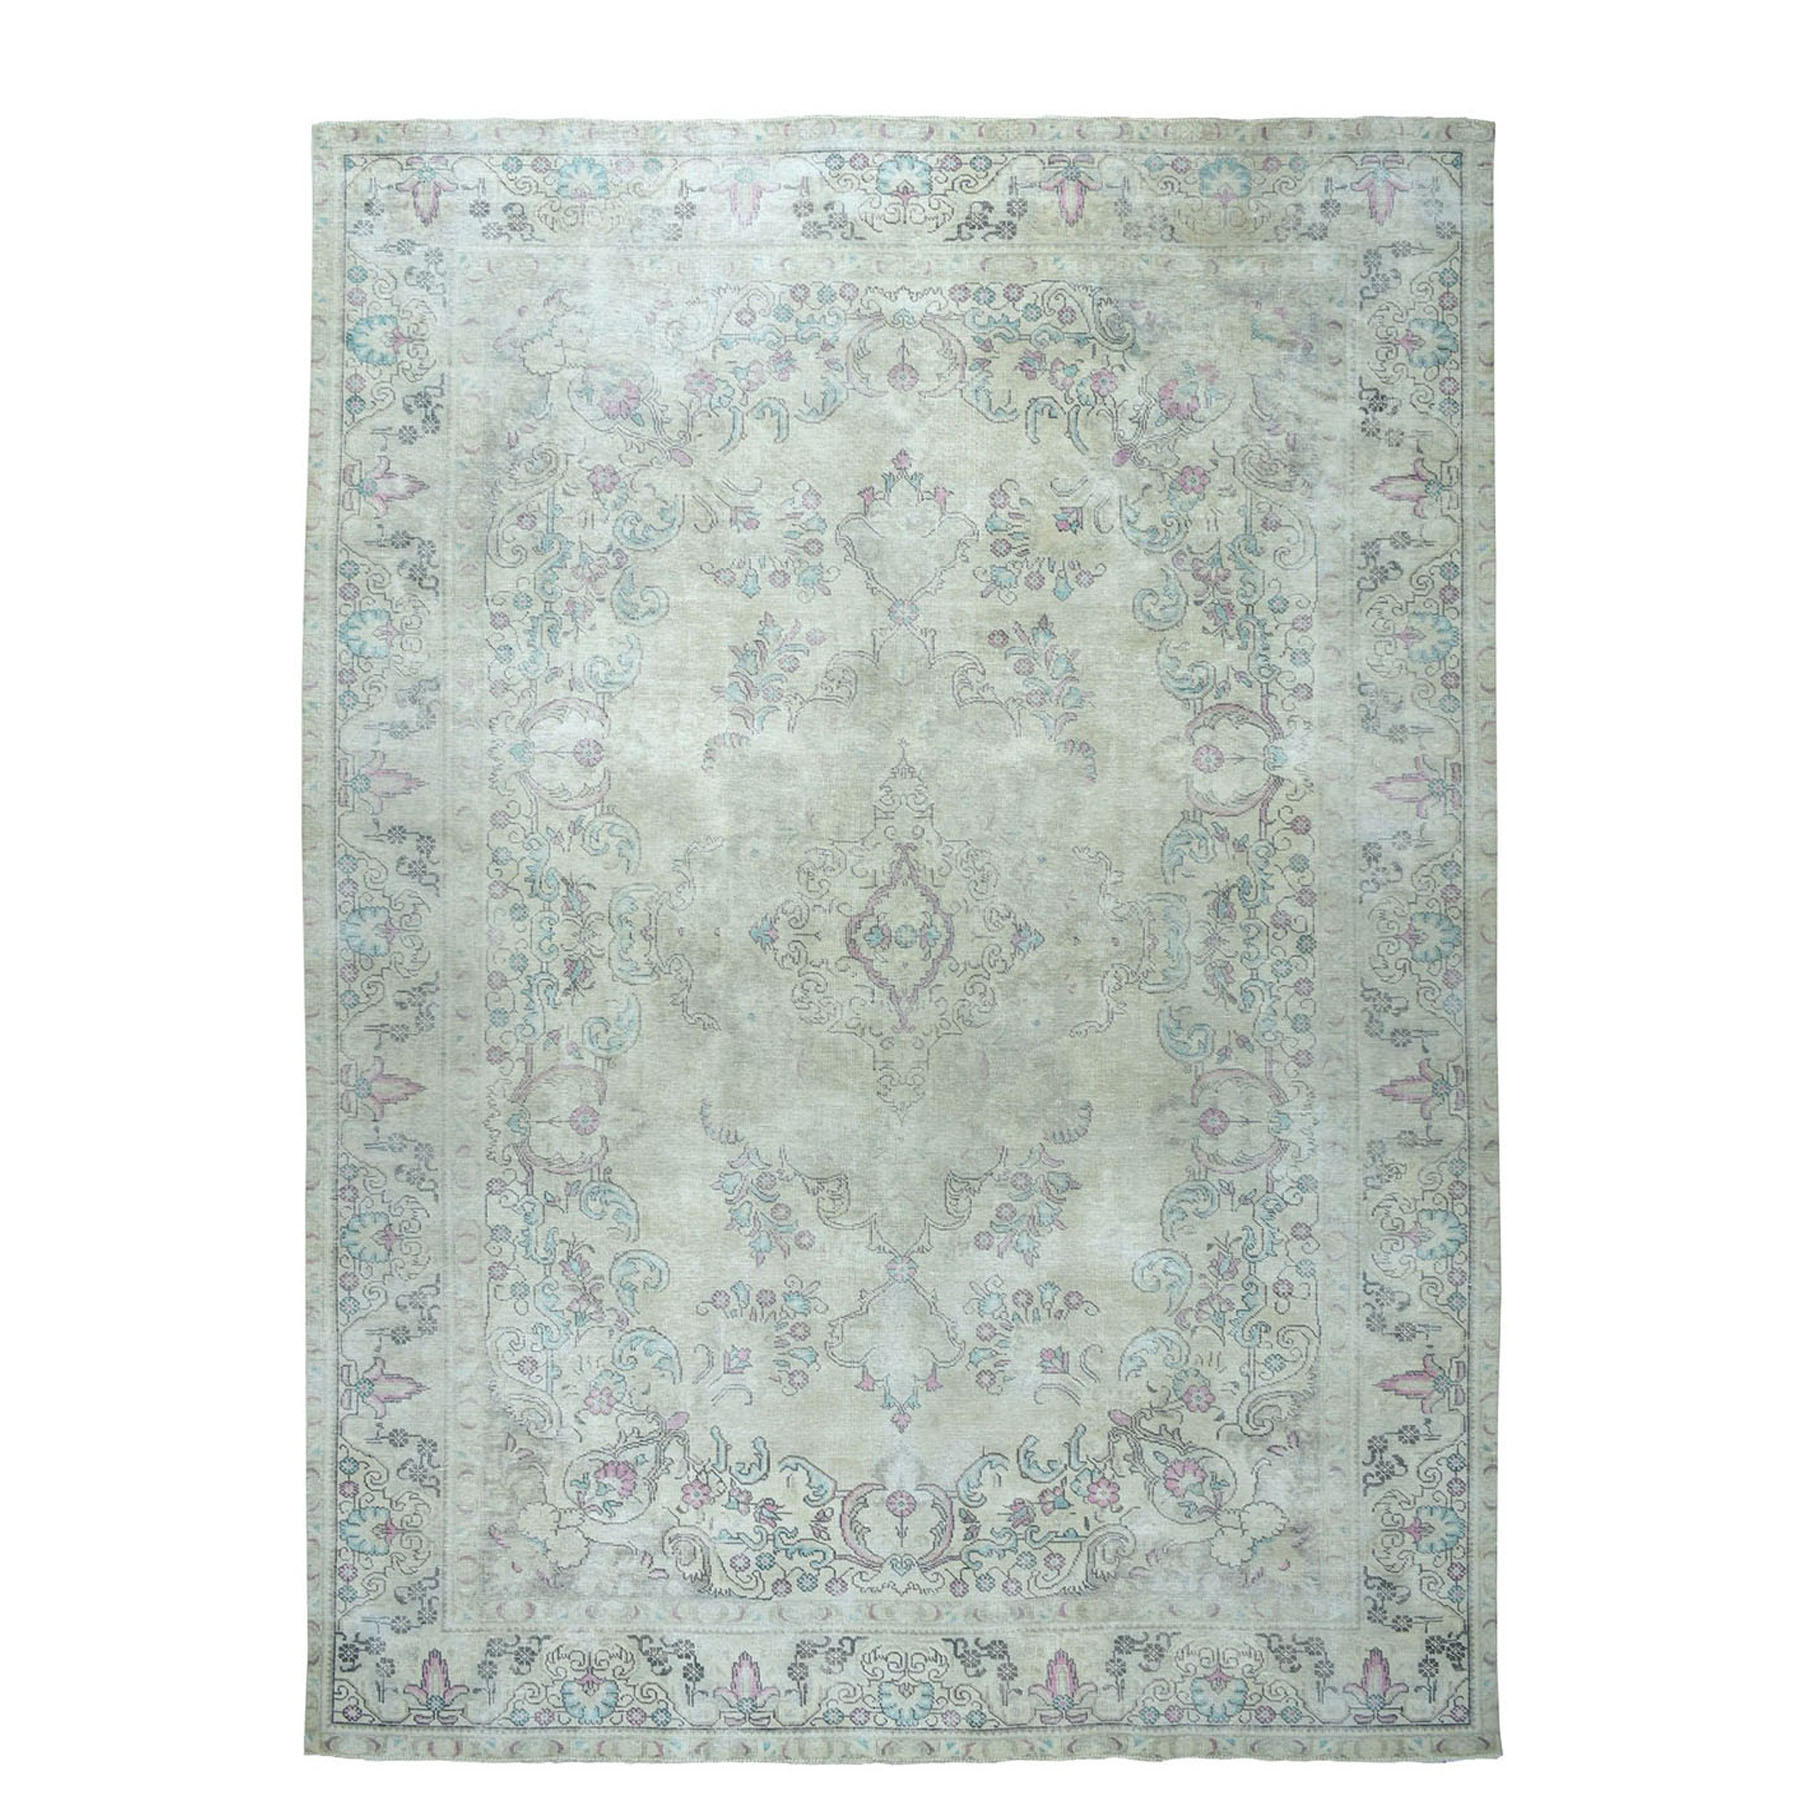 """9'4""""X12'7"""" Colorful Vintage Tabriz Worn Wool Hand-Knotted Oriental Rug moae07e6"""